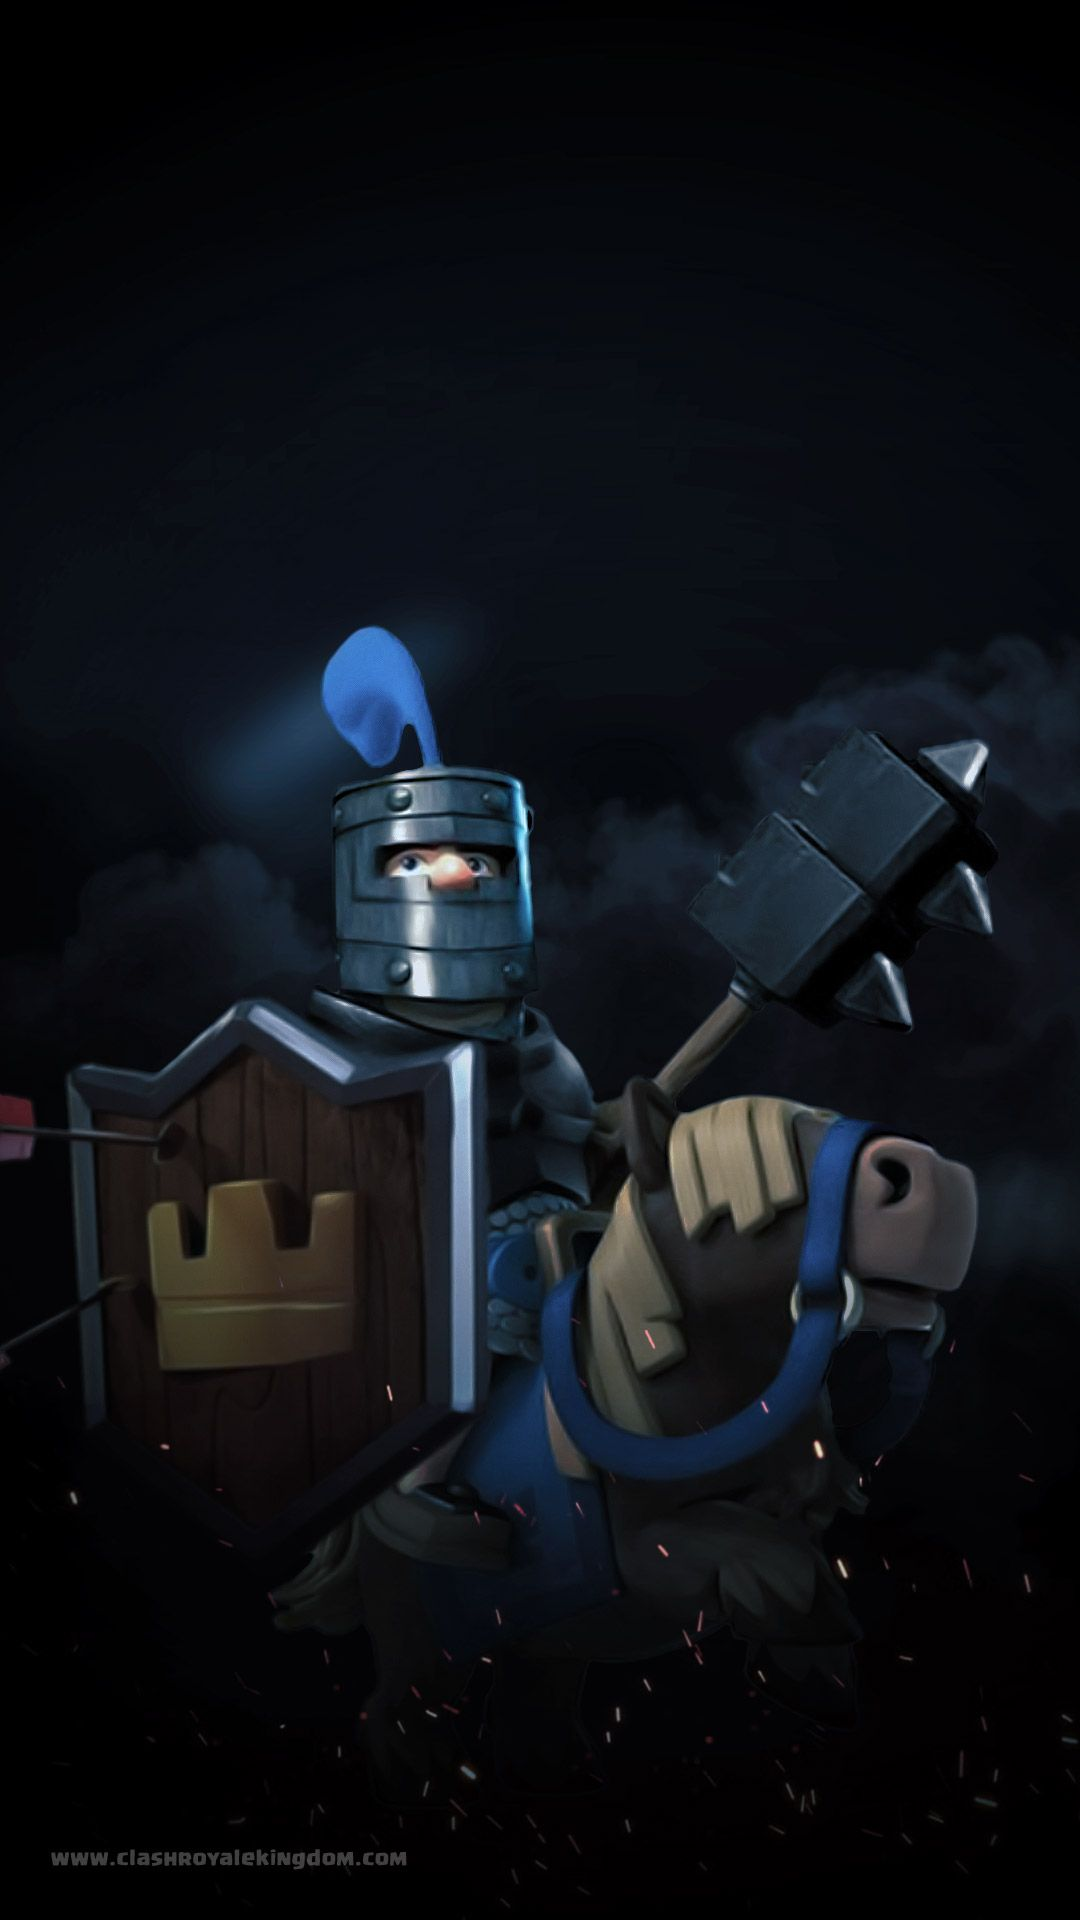 Clash royale wallpaper hd iphone